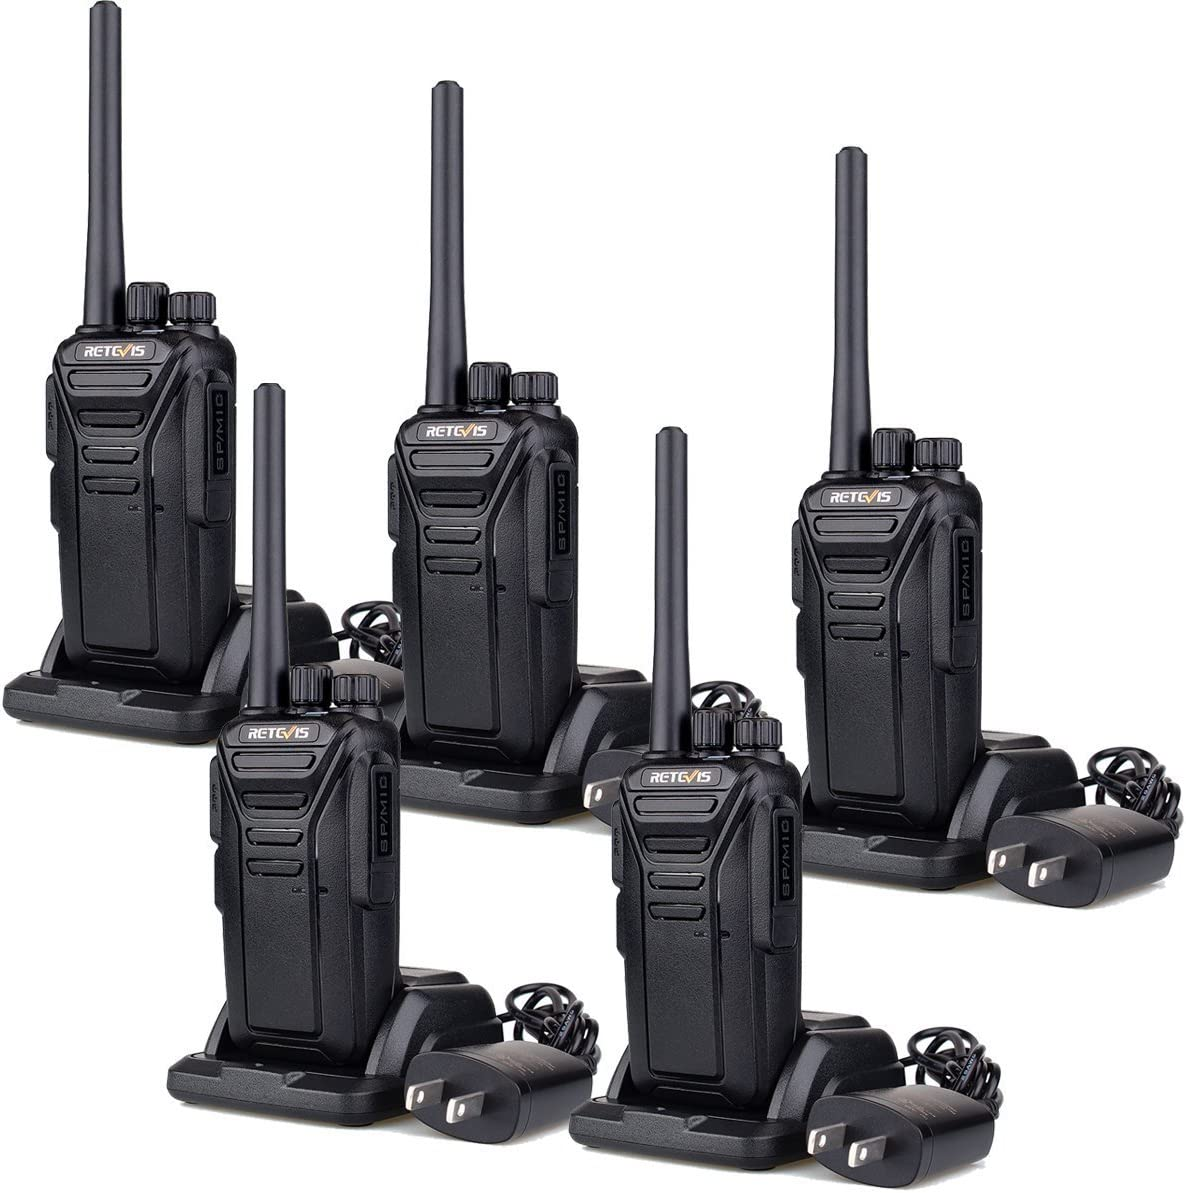 Retevis RT27 Walkie Talkies for Adults Rechargeable Long Range 2 Way Radio Anti Fall 22 CH VOX Two Way Radio(Black,5 Pack)